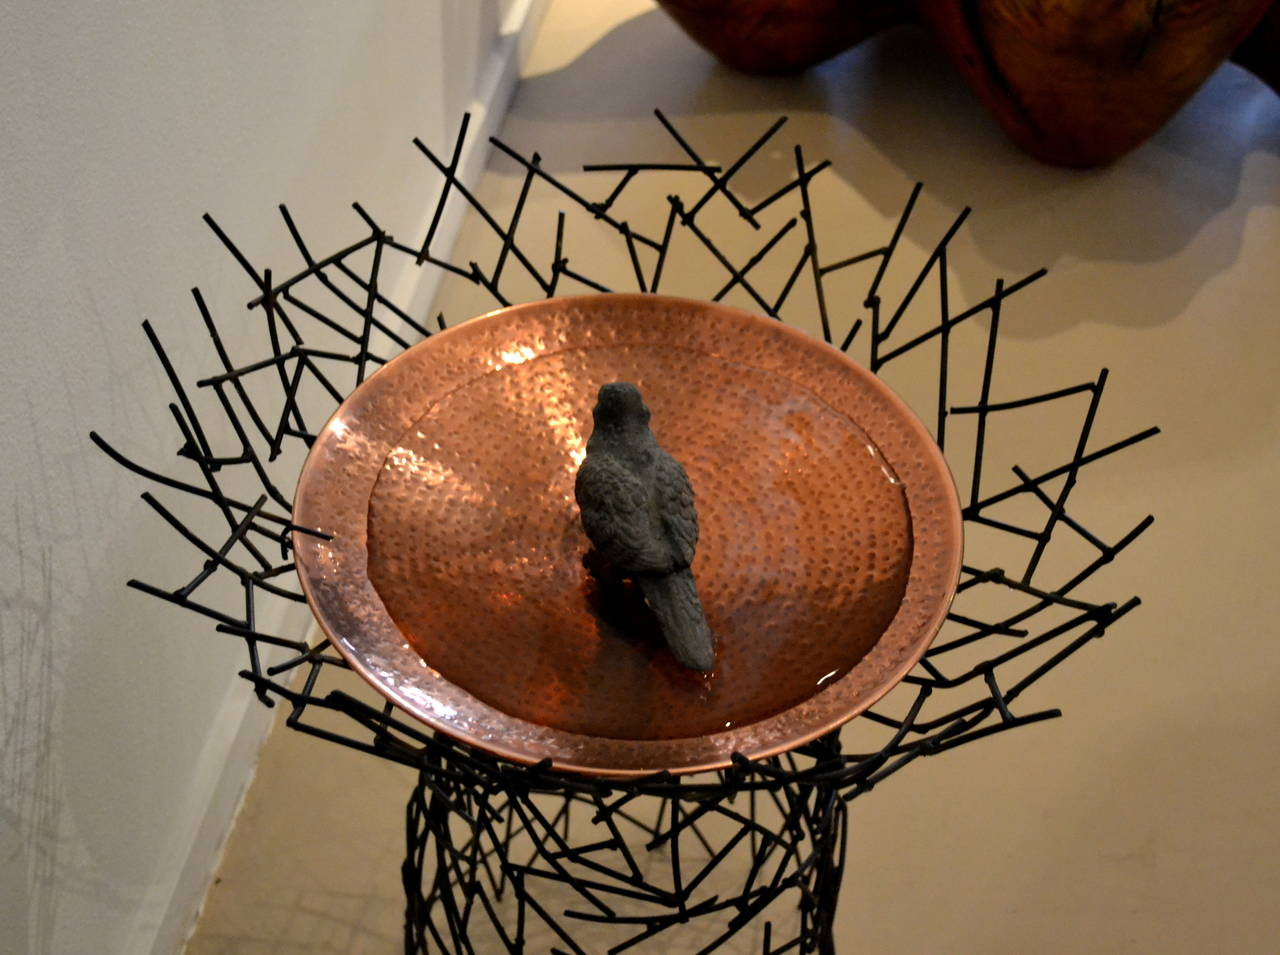 Hand-forged steel basket weave bird bath with copper bowl by artist Moira Fain. (Bird shown in bath not included).